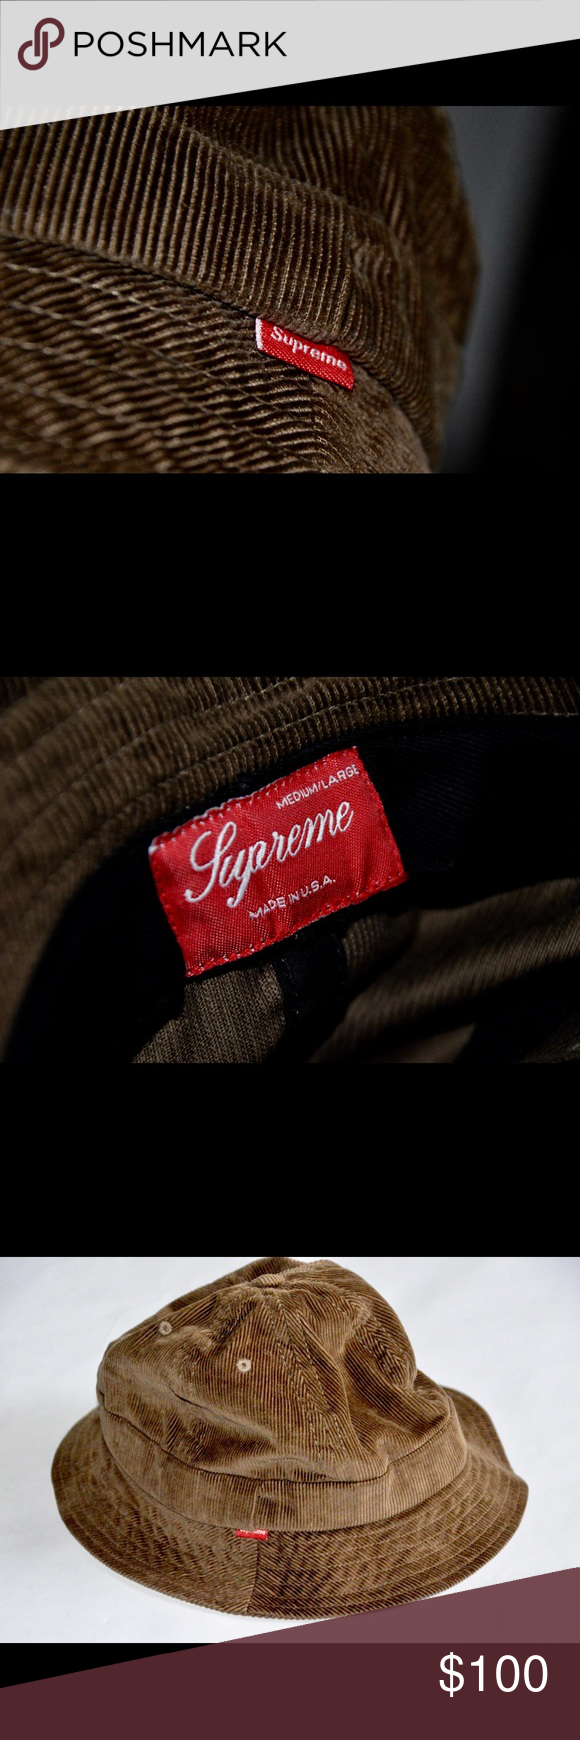 Supreme Corduroy Bucket Hat Rare Supreme Corduroy Bucket Hat Supreme  Accessories Hats 2f939c380d3